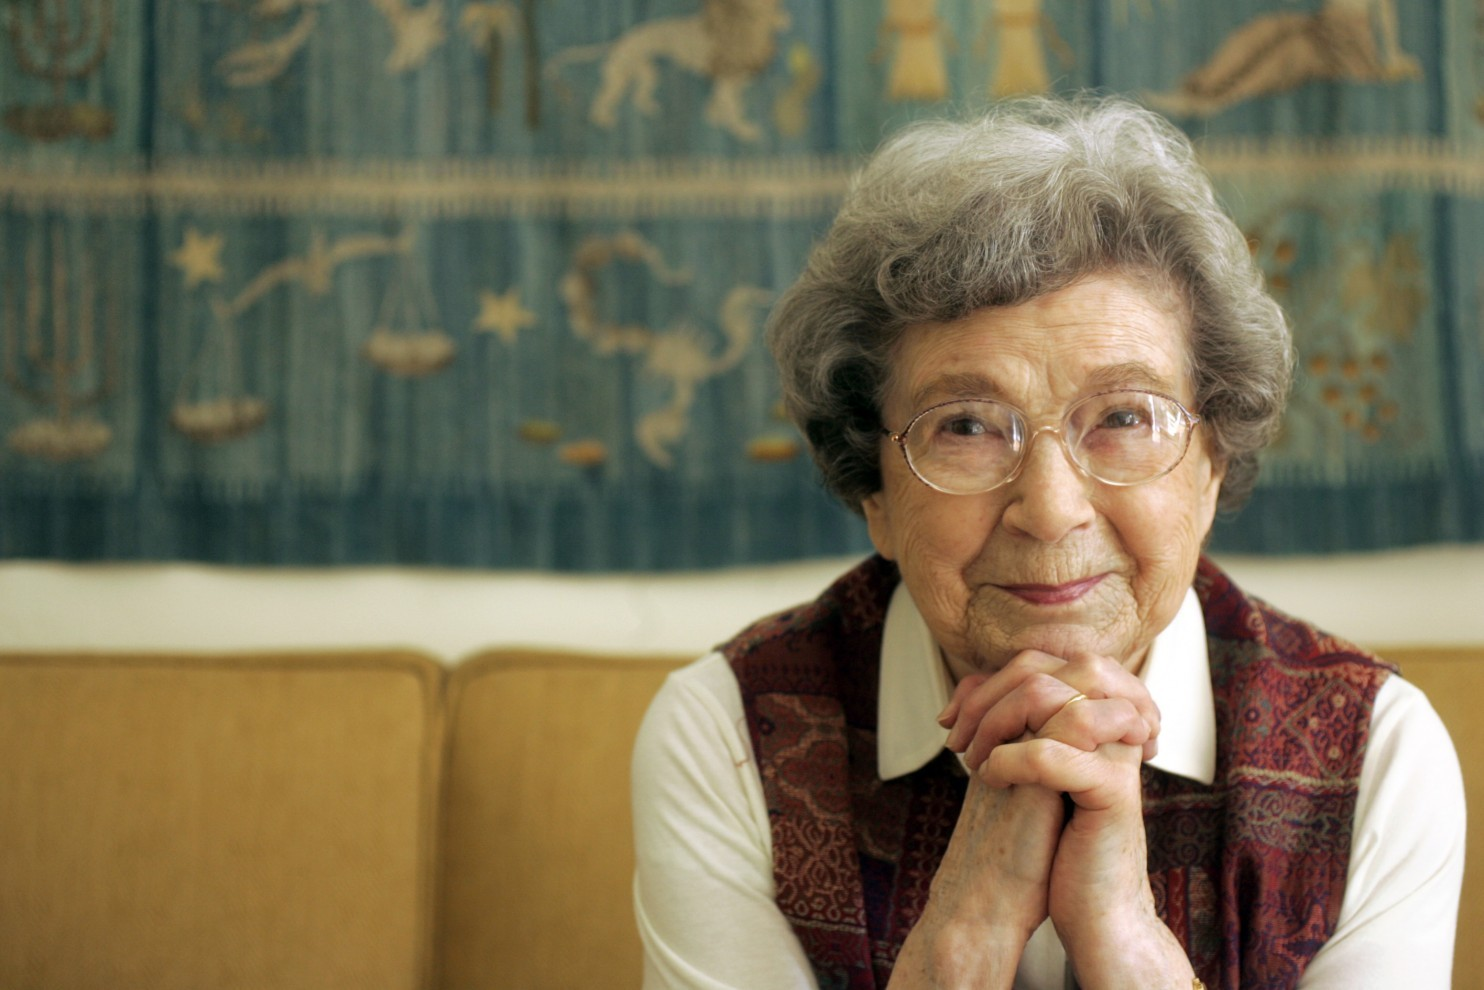 beverly cleary turns 100